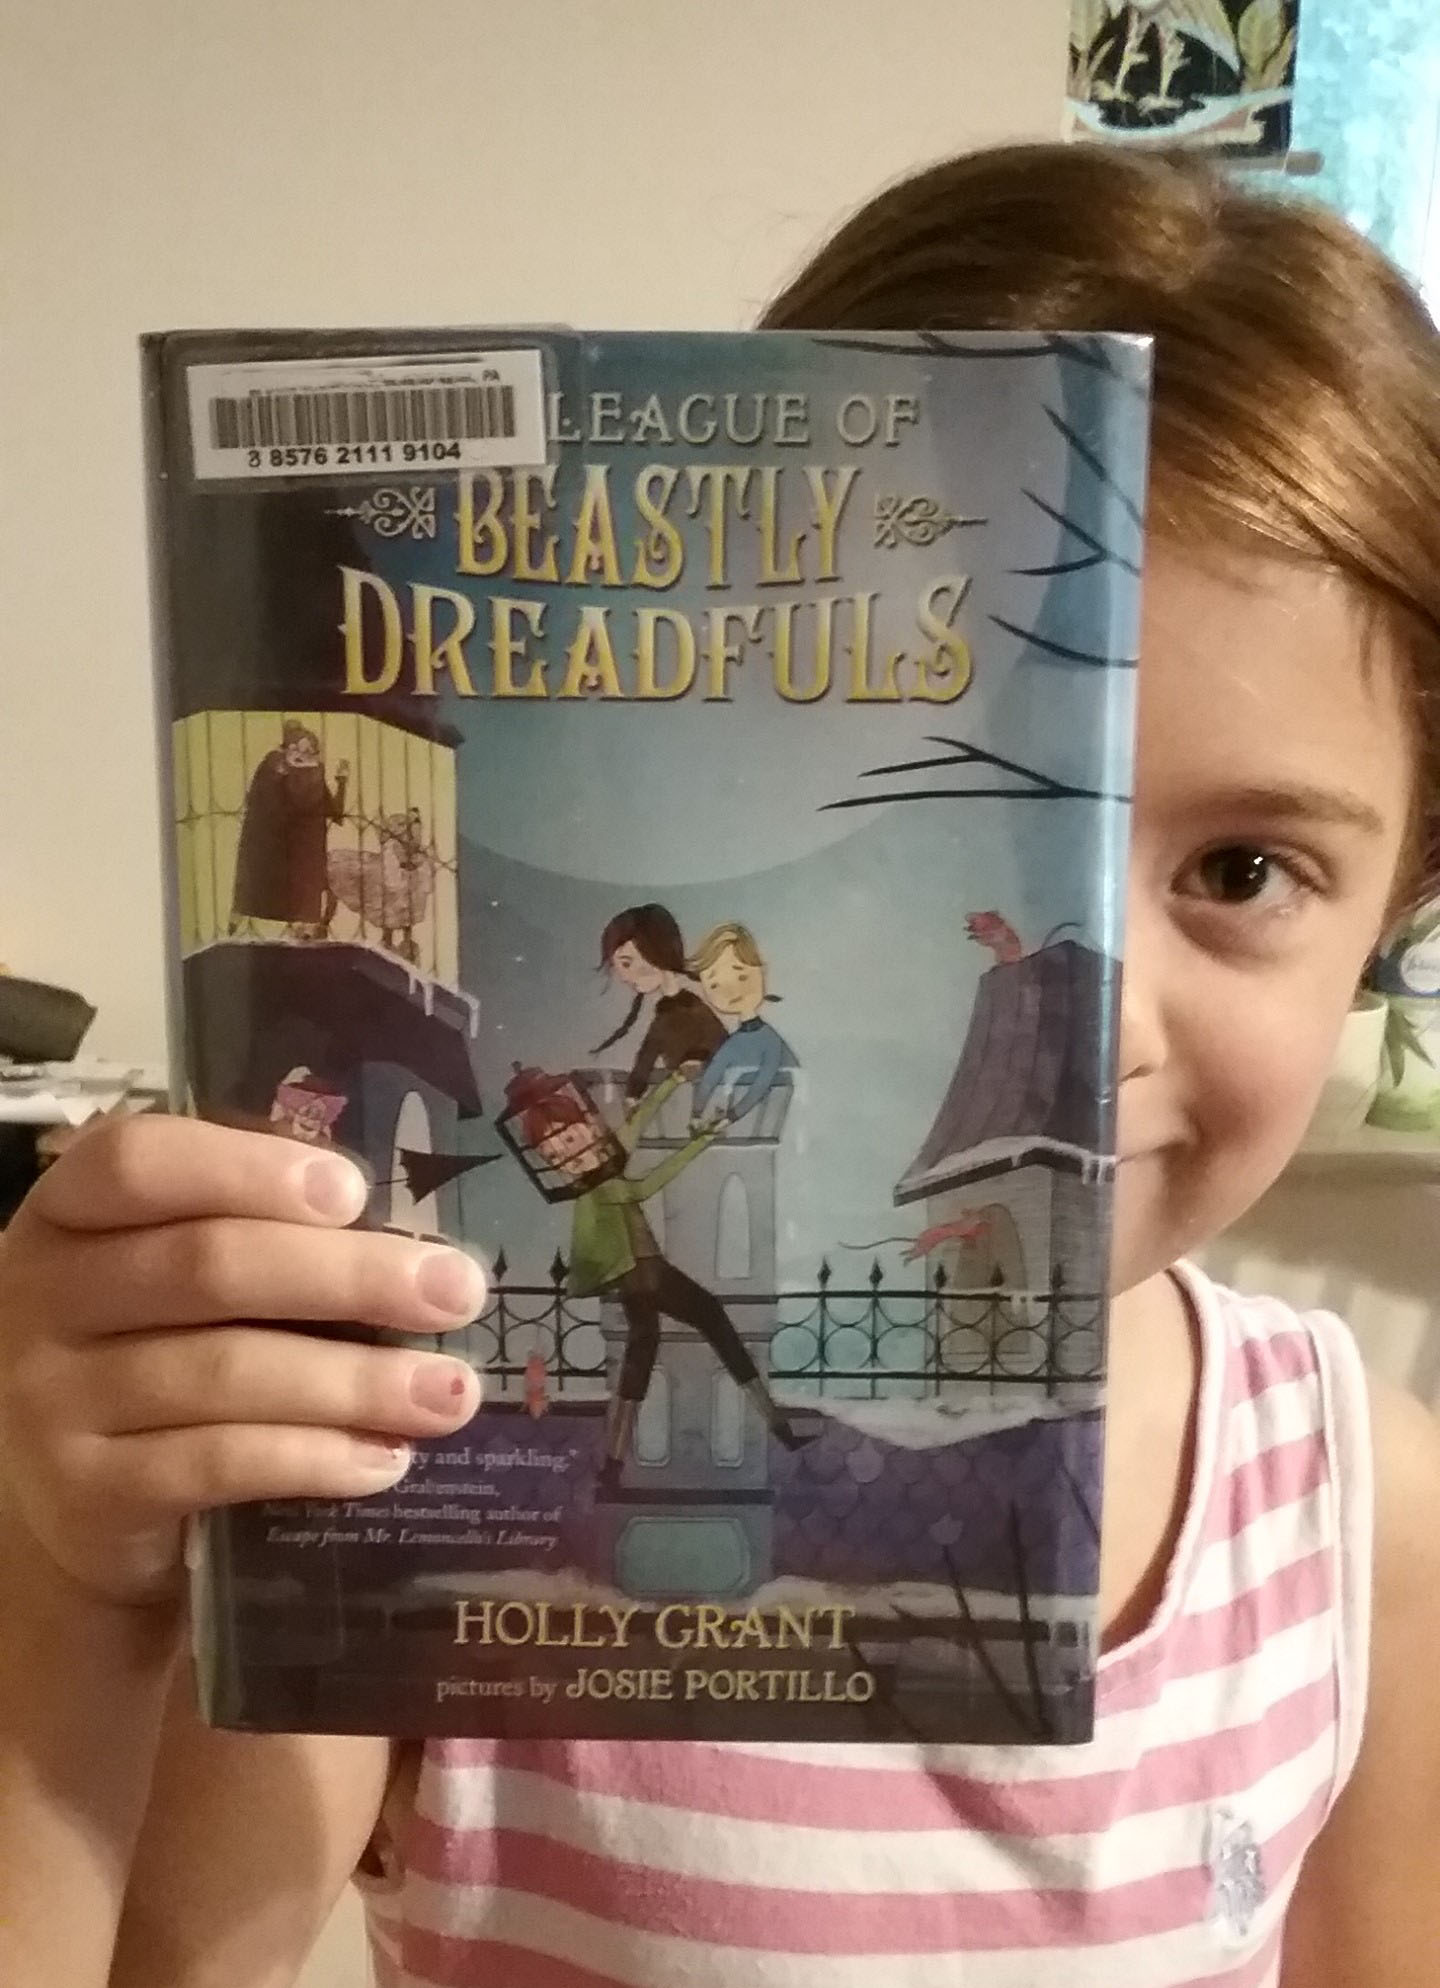 Recently, My Sixyearold Left The Library With Two Thick Books In Her  Little Hands: The League Of Beastly Dreadfuls And Its Sequel, The League Of  Beastly